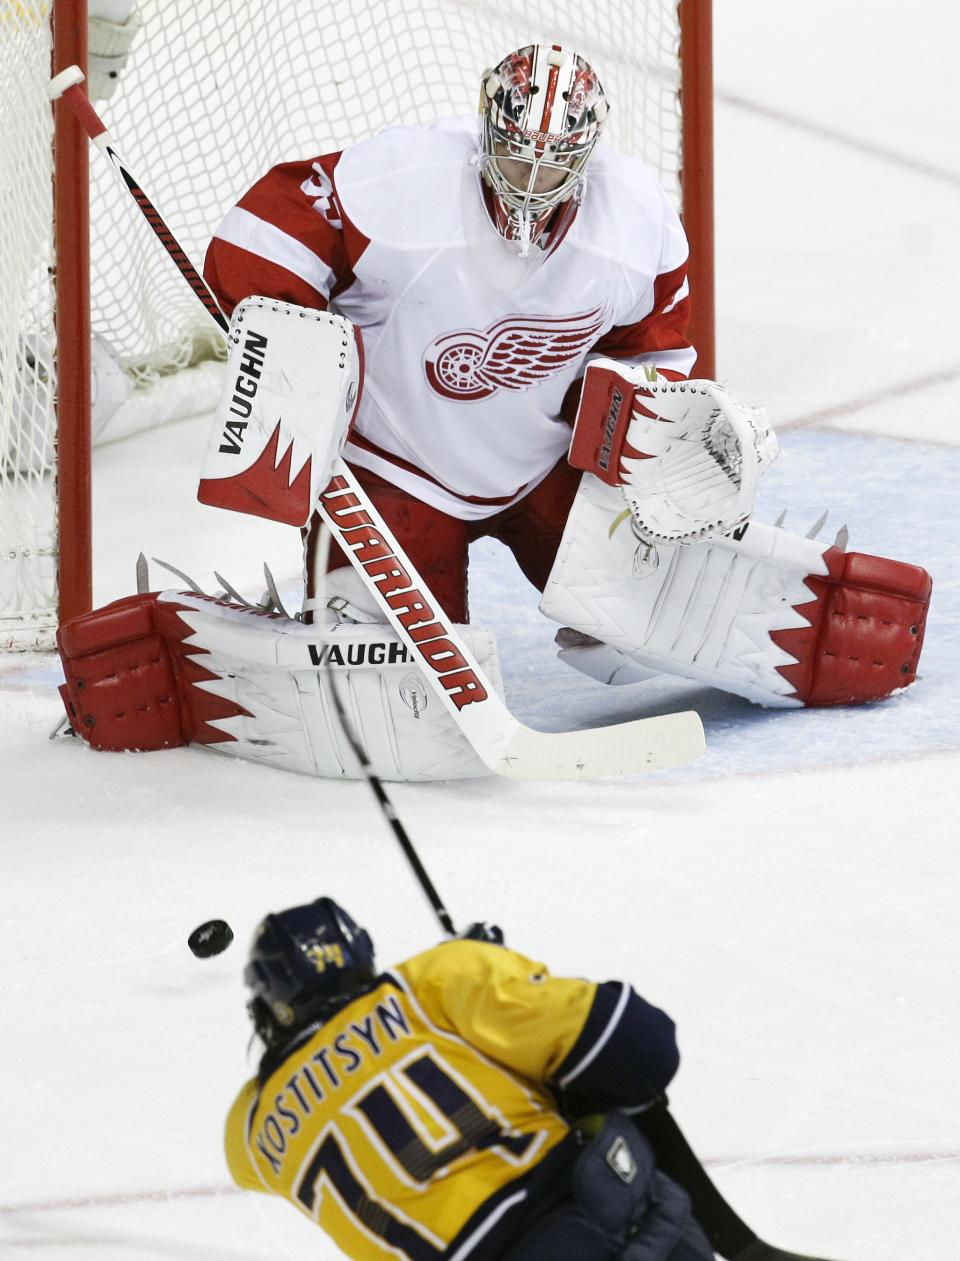 Detroit Red Wings goalie Jimmy Howard, top, blocks a shot by Nashville Predators left wing Sergei Kostitsyn (74), of Belarus, in the second period of Game 5 of a first-round NHL hockey playoff series on Friday, April 20, 2012, in Nashville, Tenn. (AP Photo/Mark Humphrey)